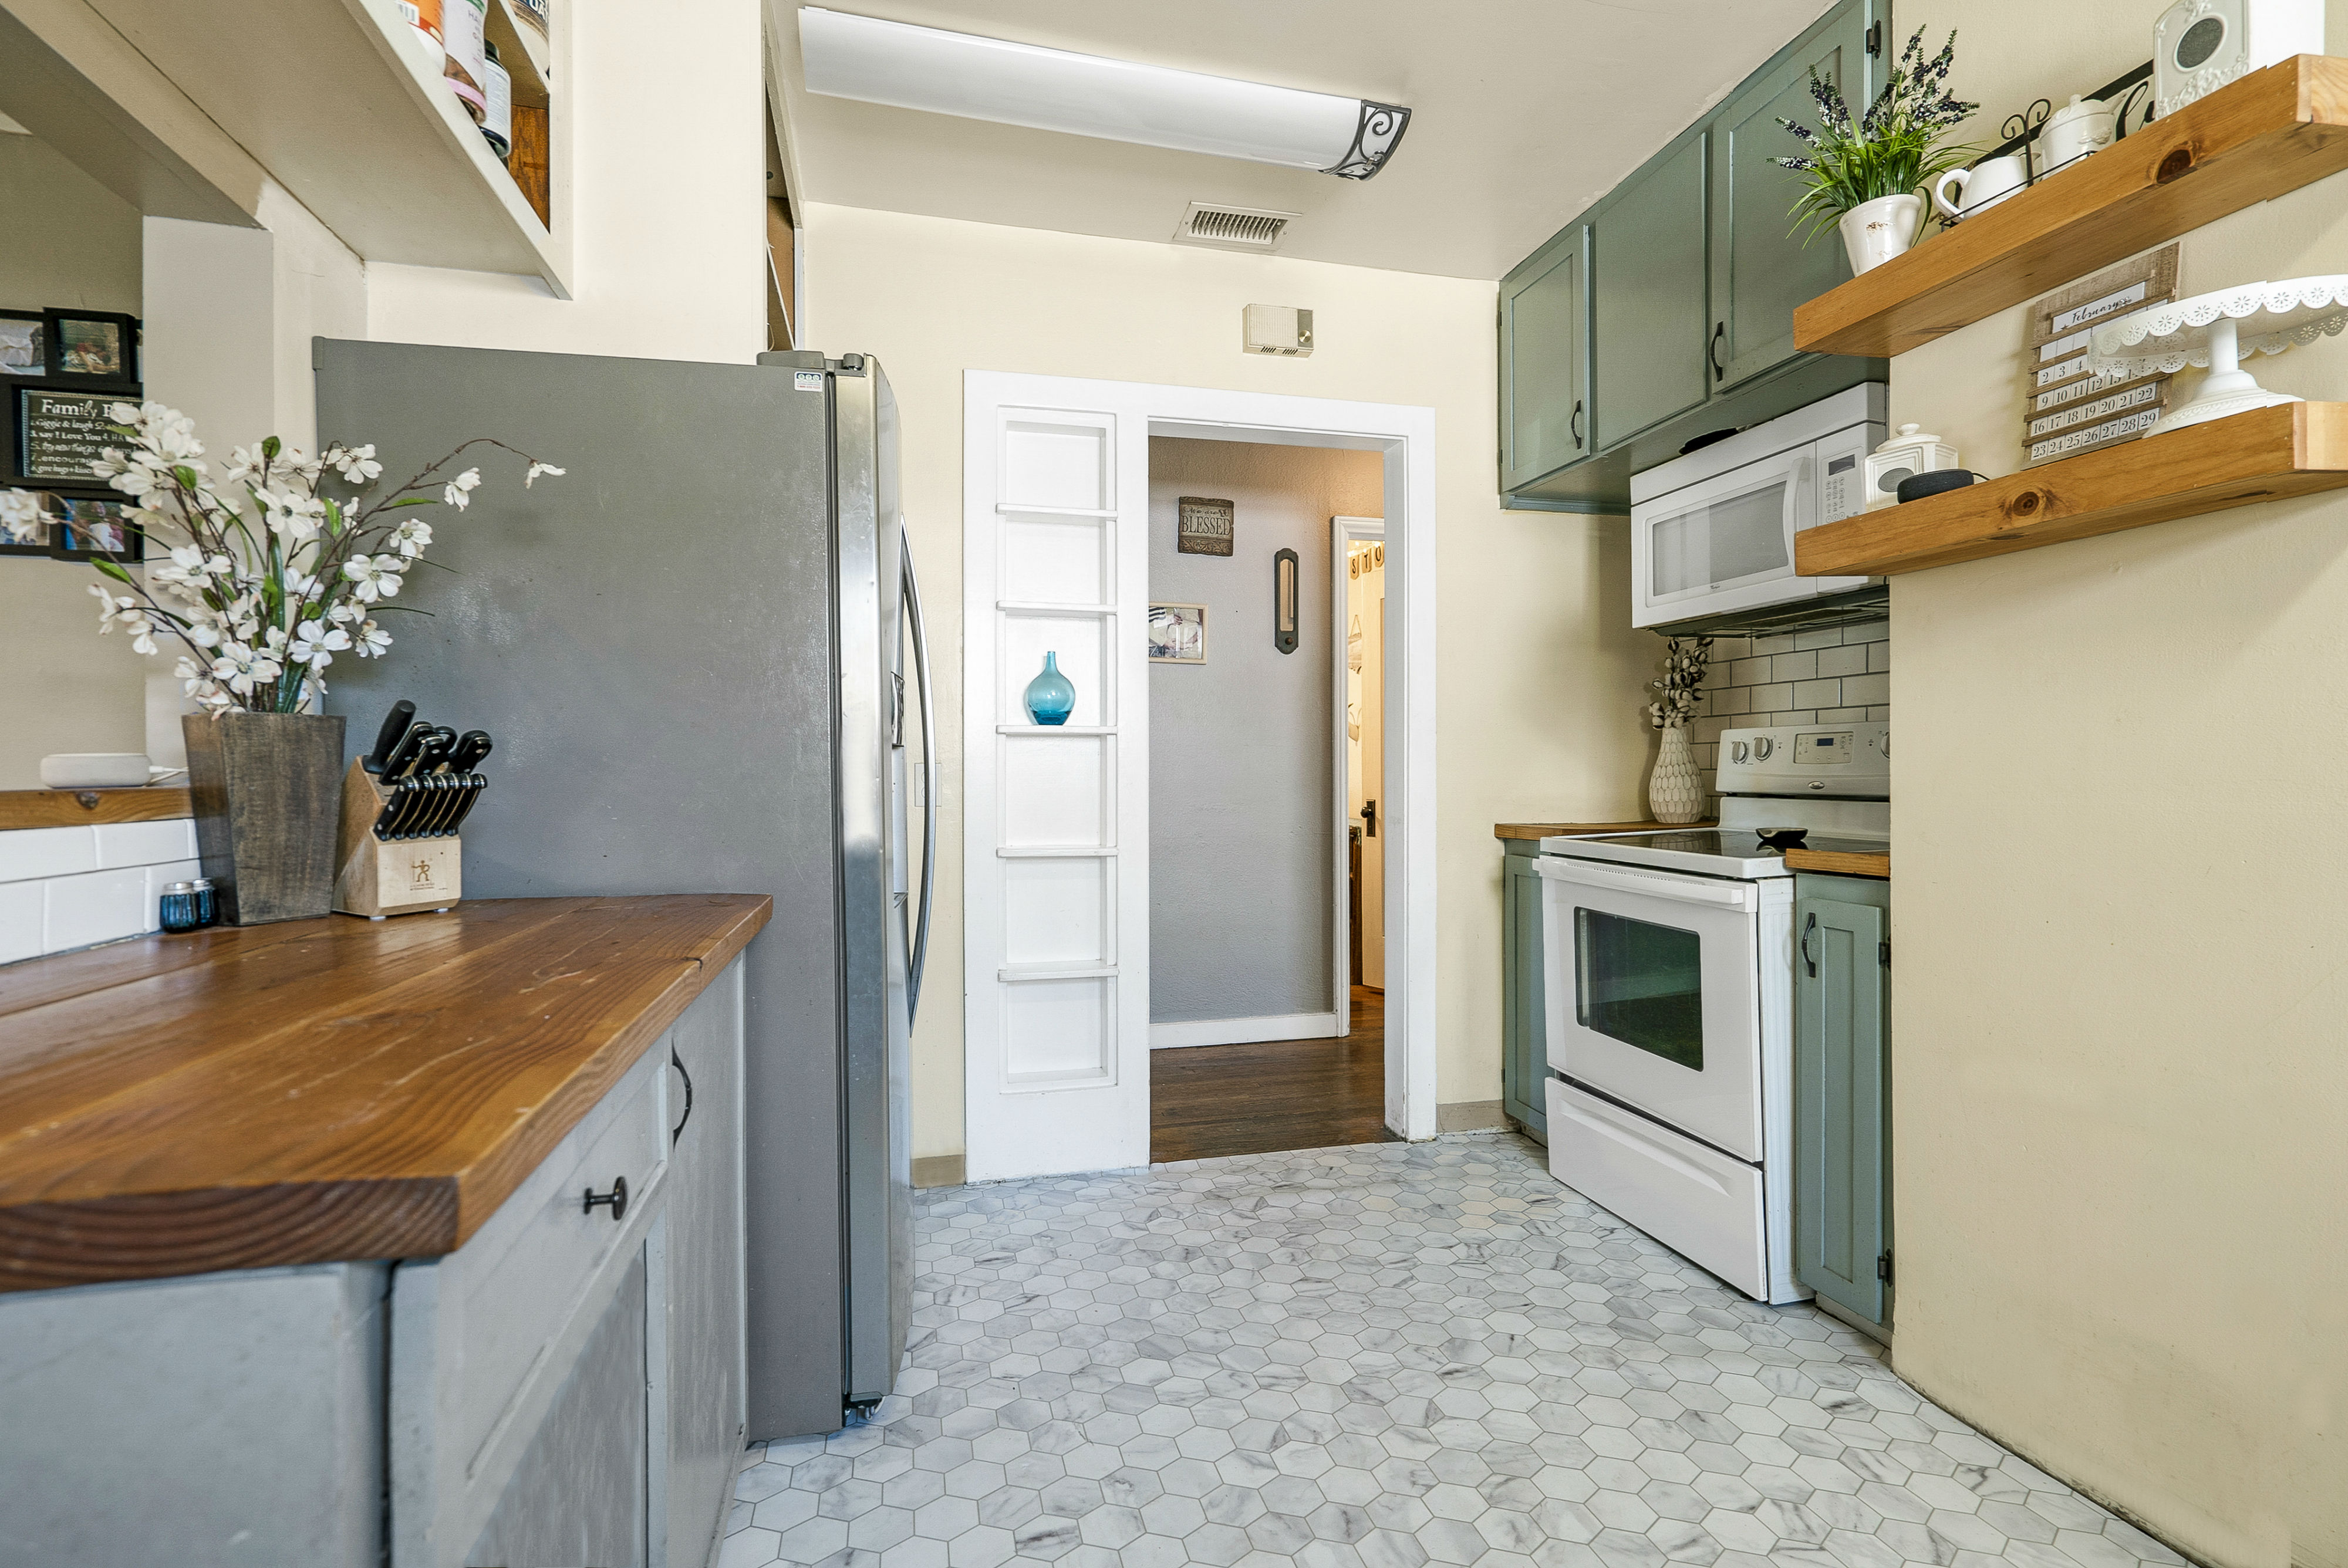 Kitchen with new flooring, built-in microwave, and built-in vertical spice rack.